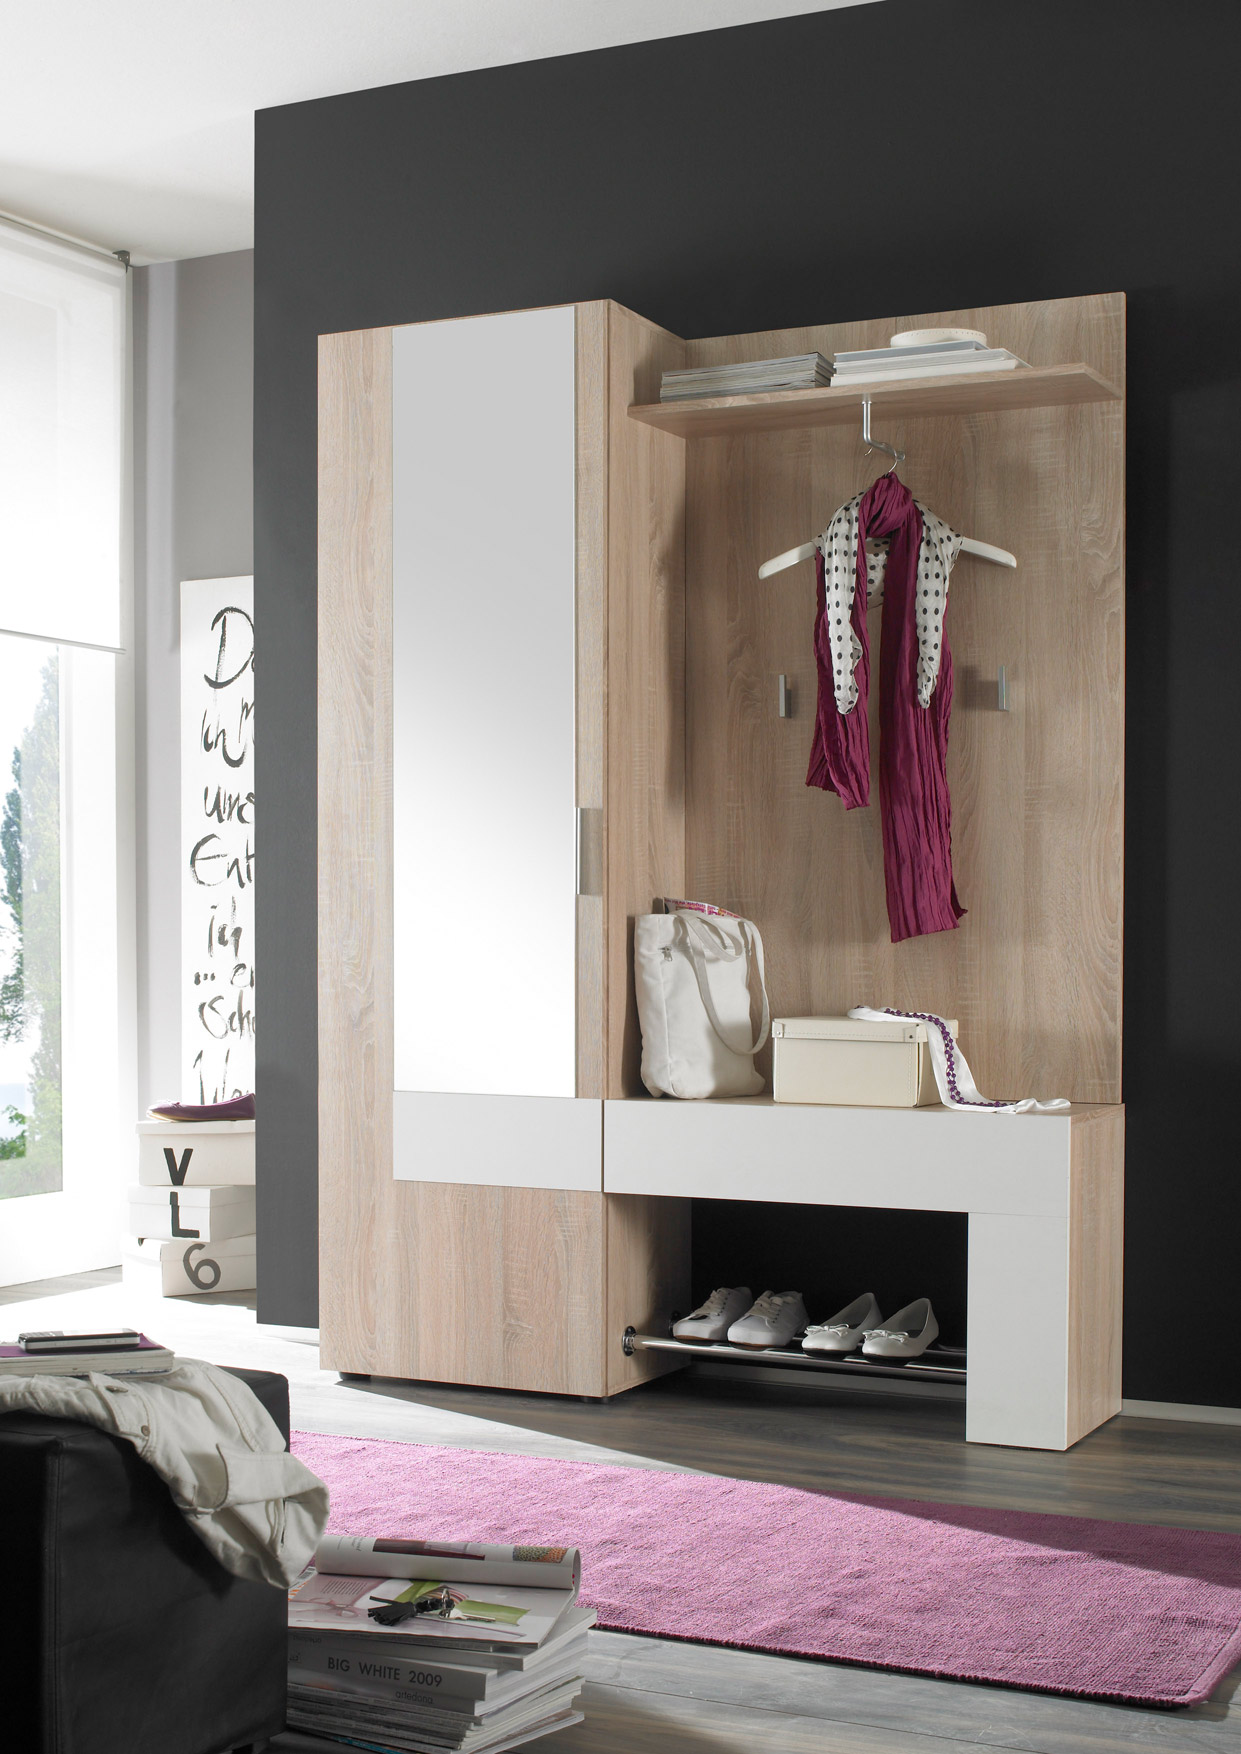 garderobenset garderobe wandgarderobe kompaktgarderobe backbeat sonoma eiche ebay. Black Bedroom Furniture Sets. Home Design Ideas